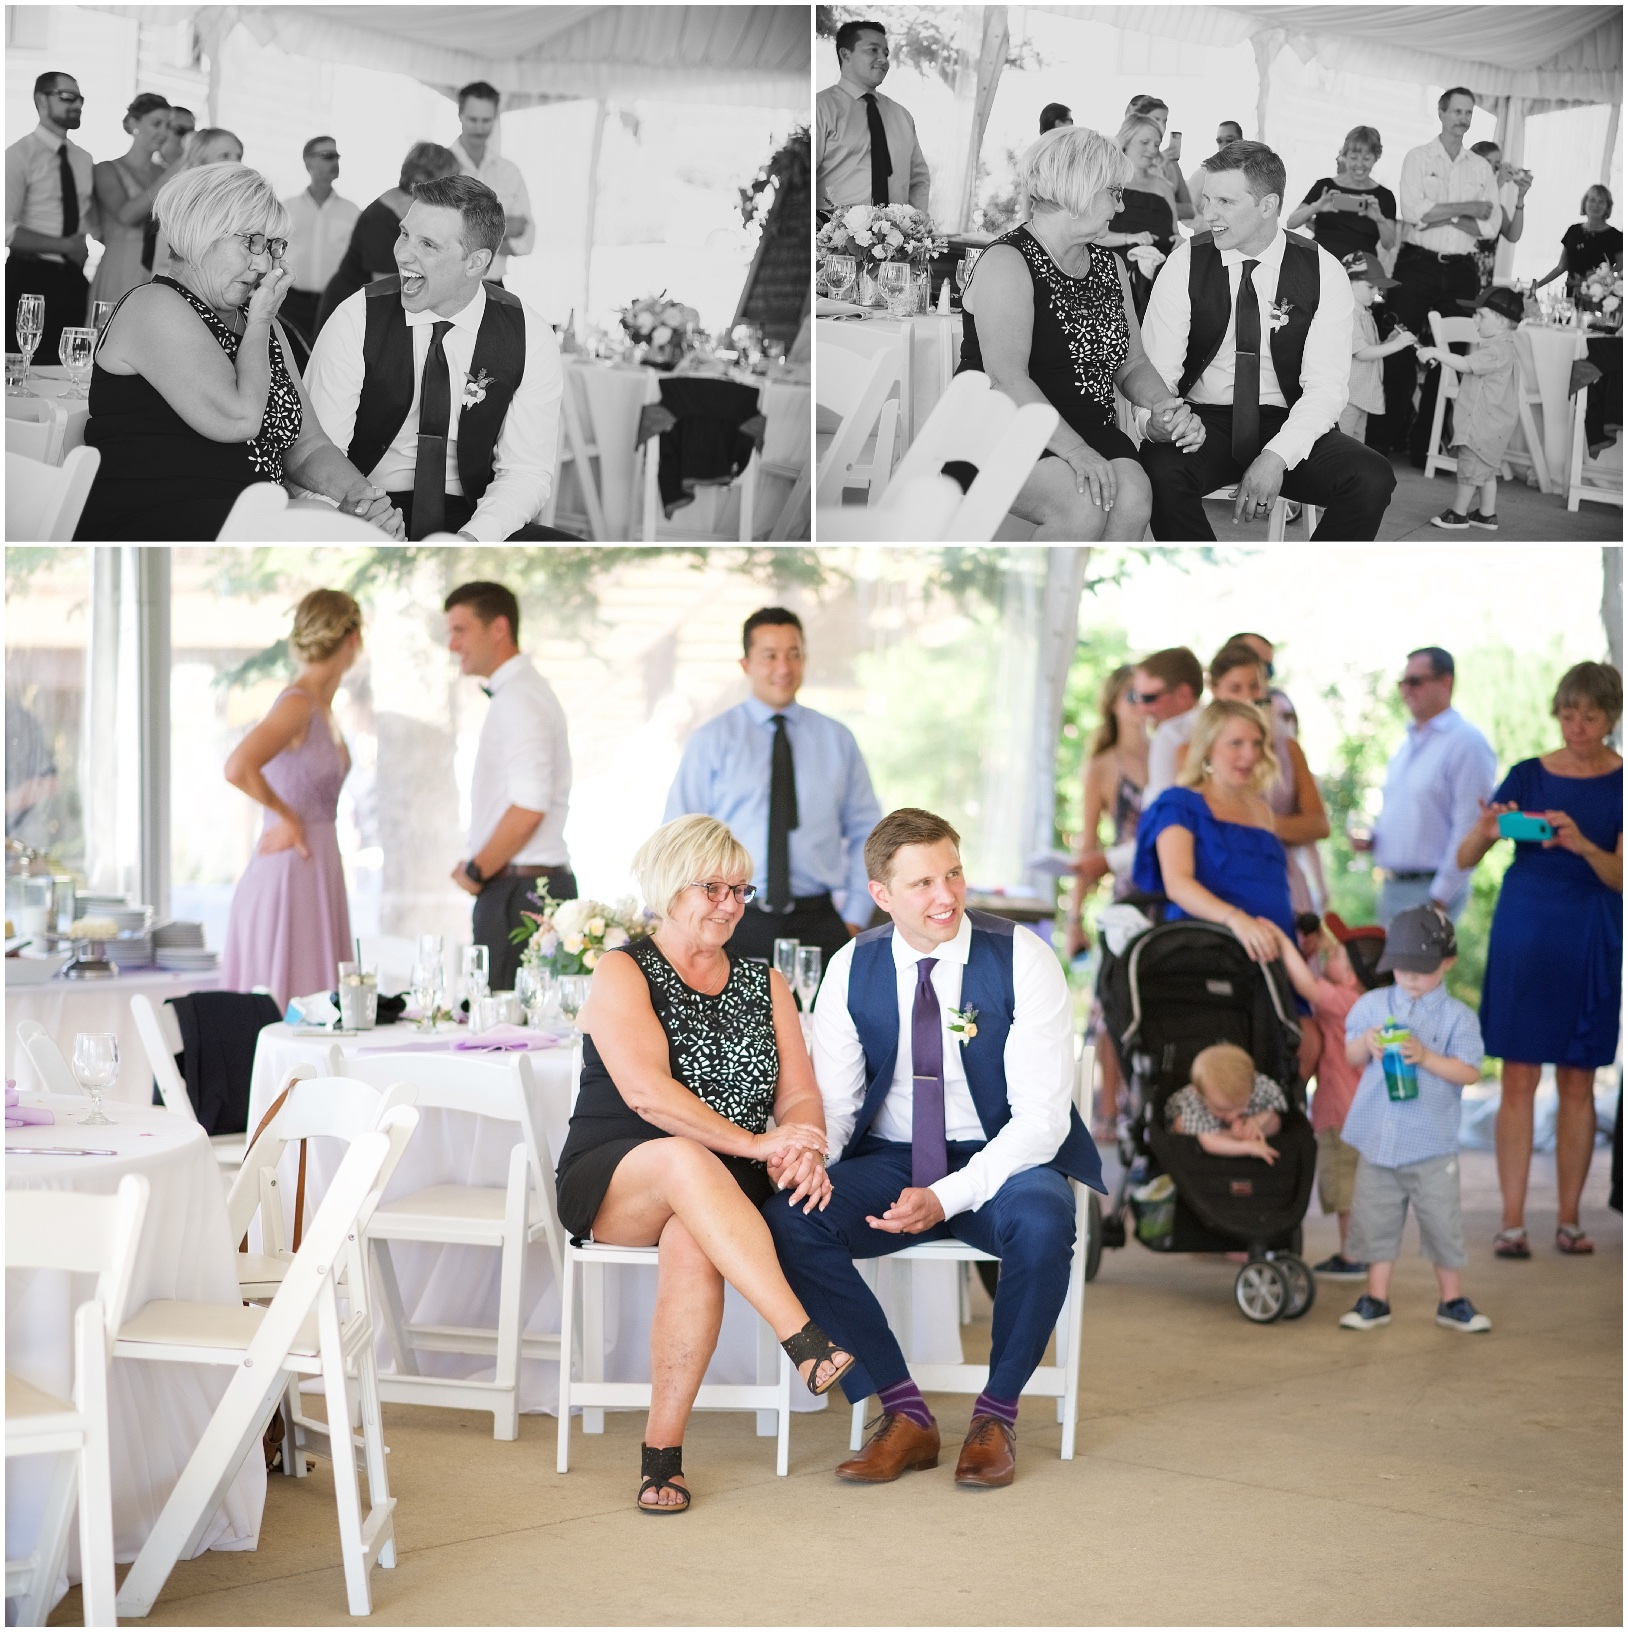 lindseyjane_wedding101.jpg